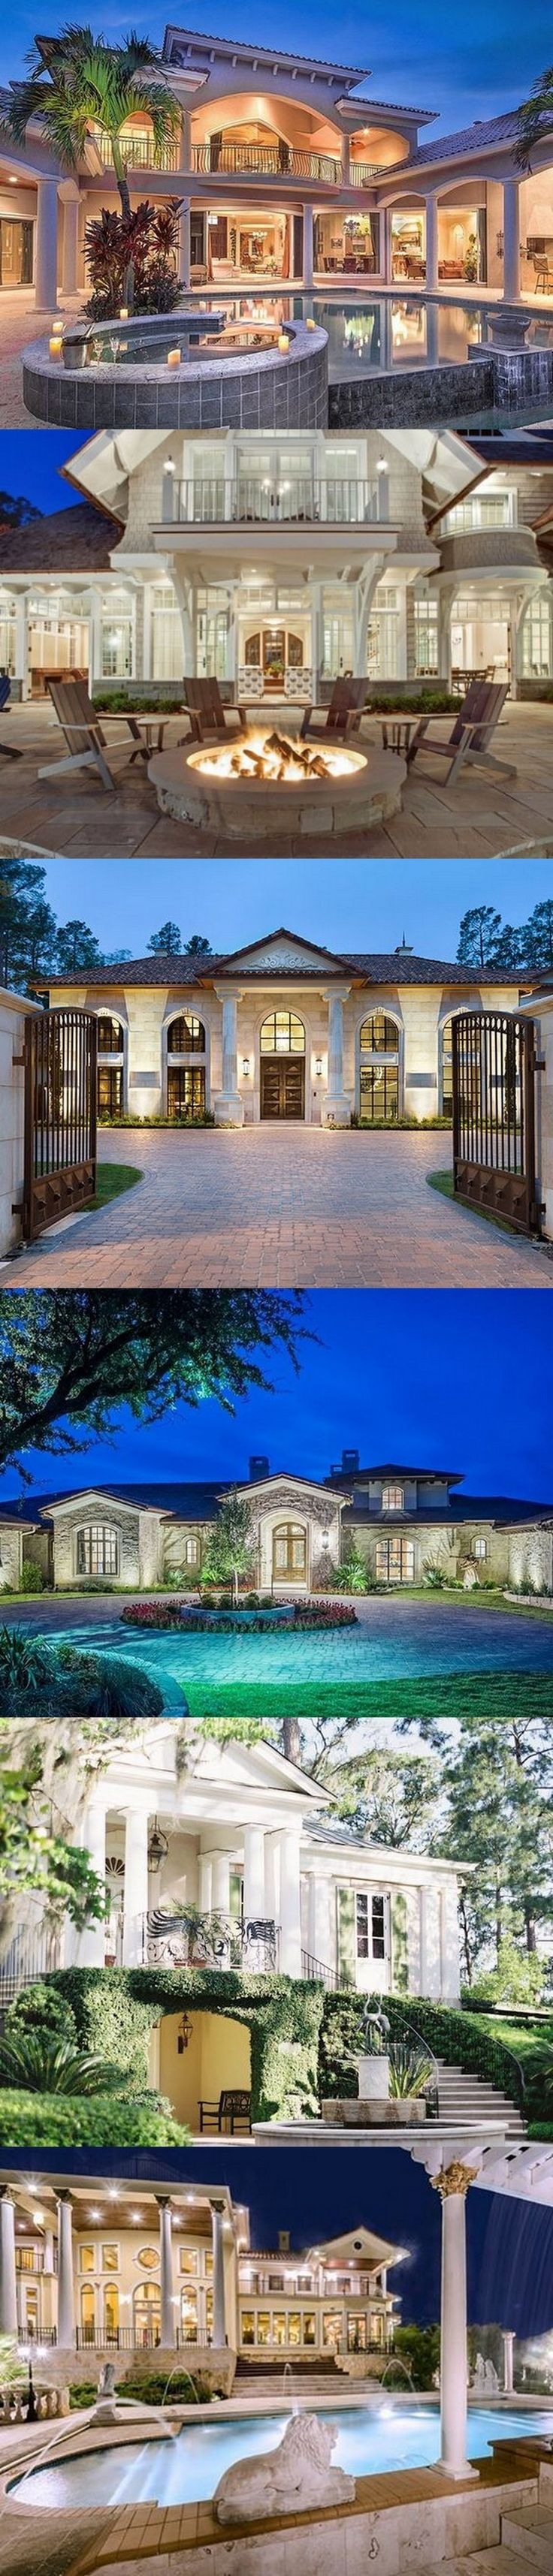 54 Stunning Dream Homes U0026 Mega Mansions From Social Media